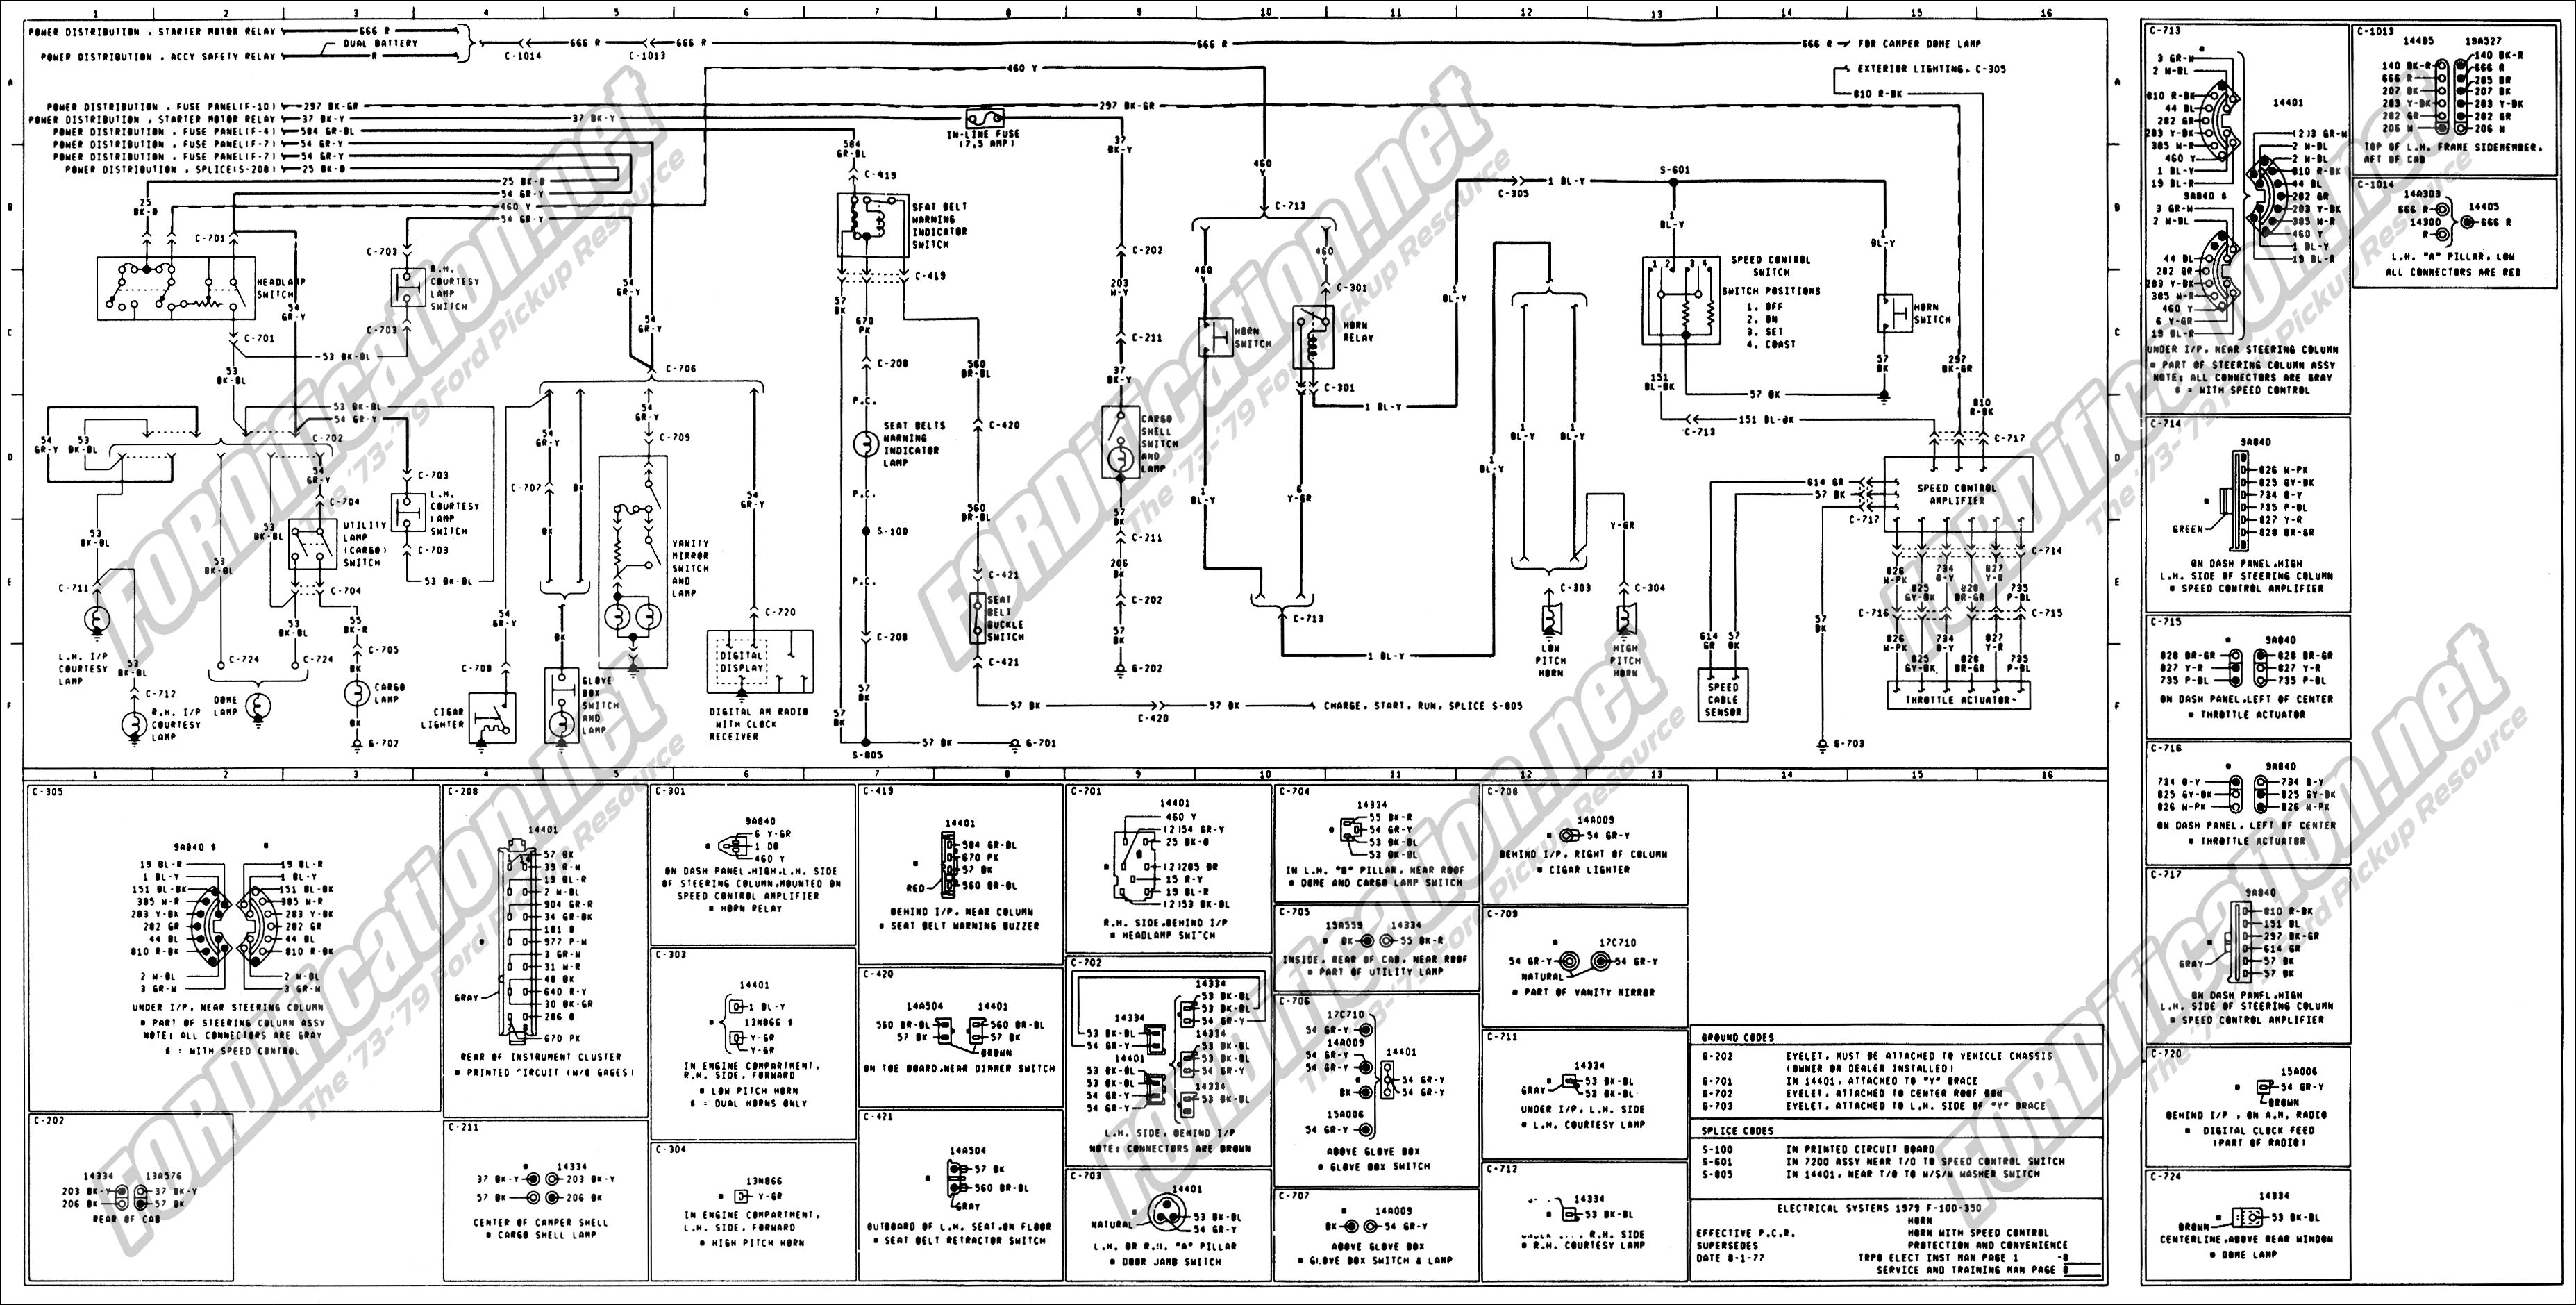 wiring_79master_8of9 1973 1979 ford truck wiring diagrams & schematics fordification net 1971 ford f250 wiring diagram at bayanpartner.co